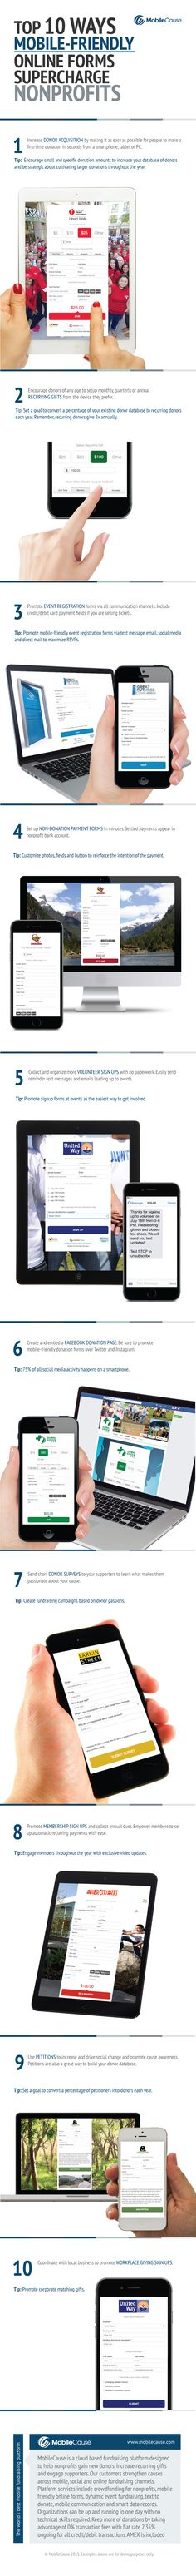 Mobile Fundraising For Nonprofits - Does your non-profit organization want to raise more money online? Focus on improving your mobile fundraising by making it faster and easier to get donations with better mobile forms.